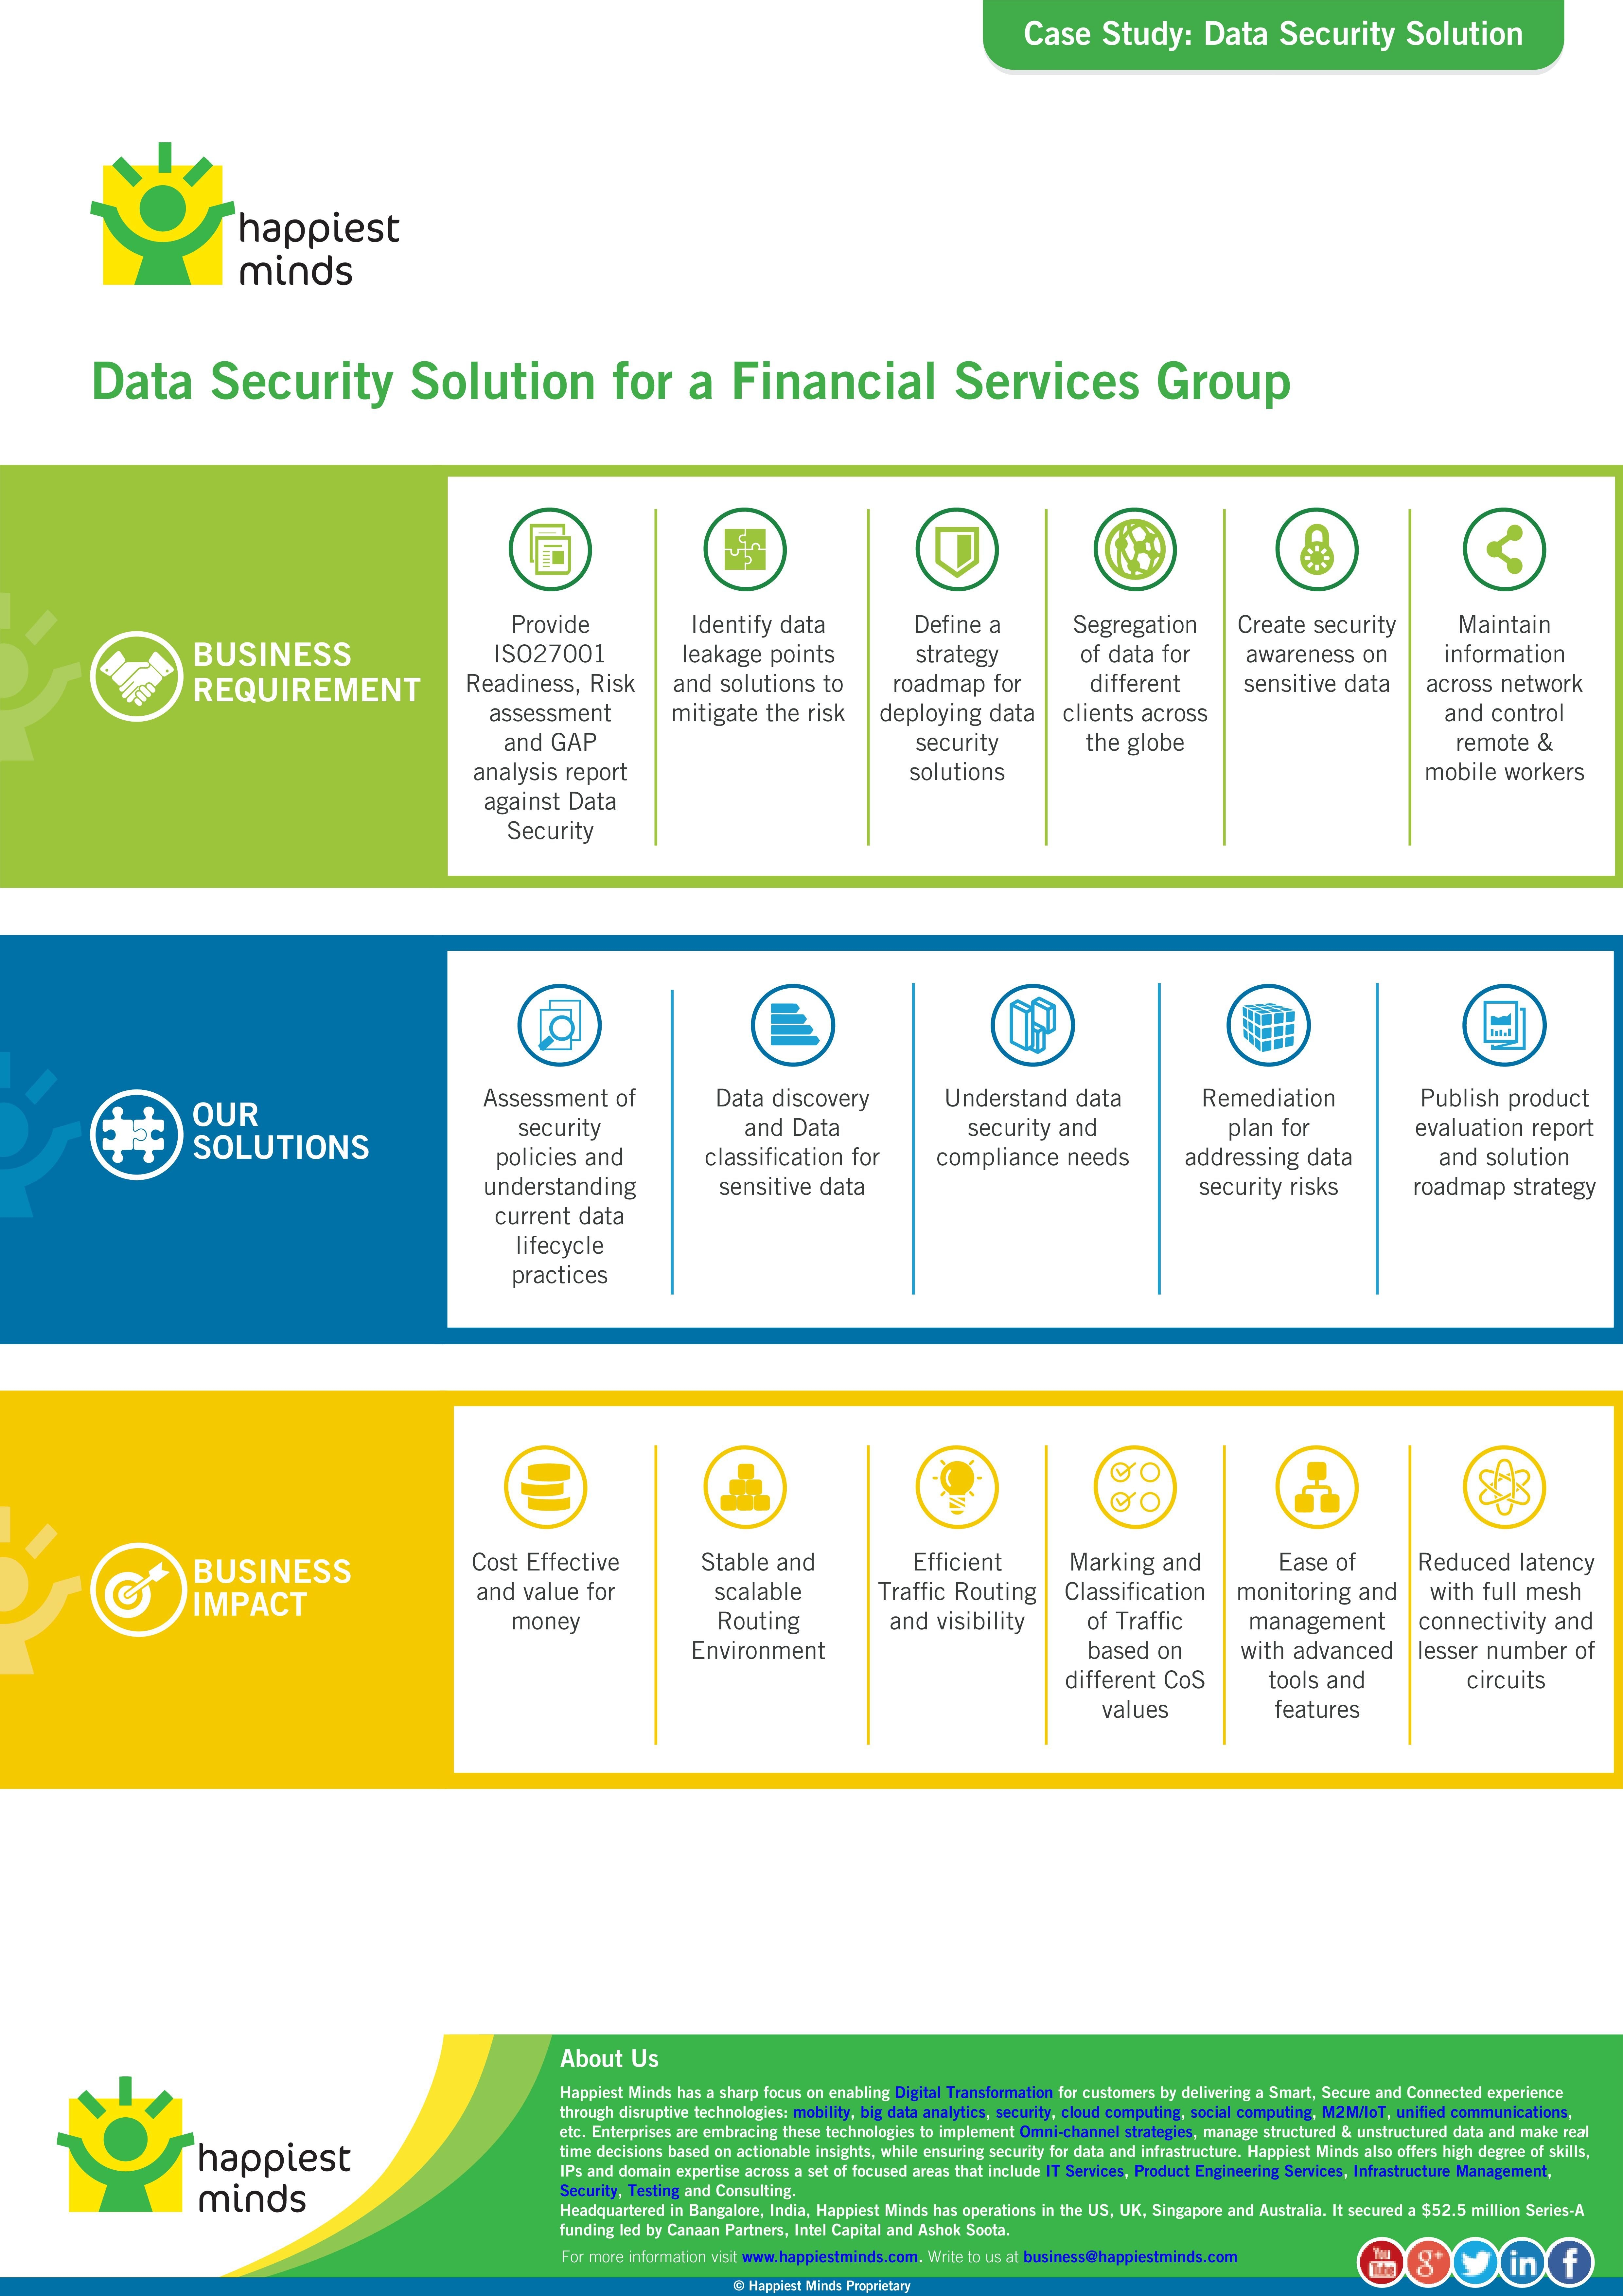 This Case Study Describes How We Helped A Financial Services Group Data Security Solutions Defining Strategy Roadmap For